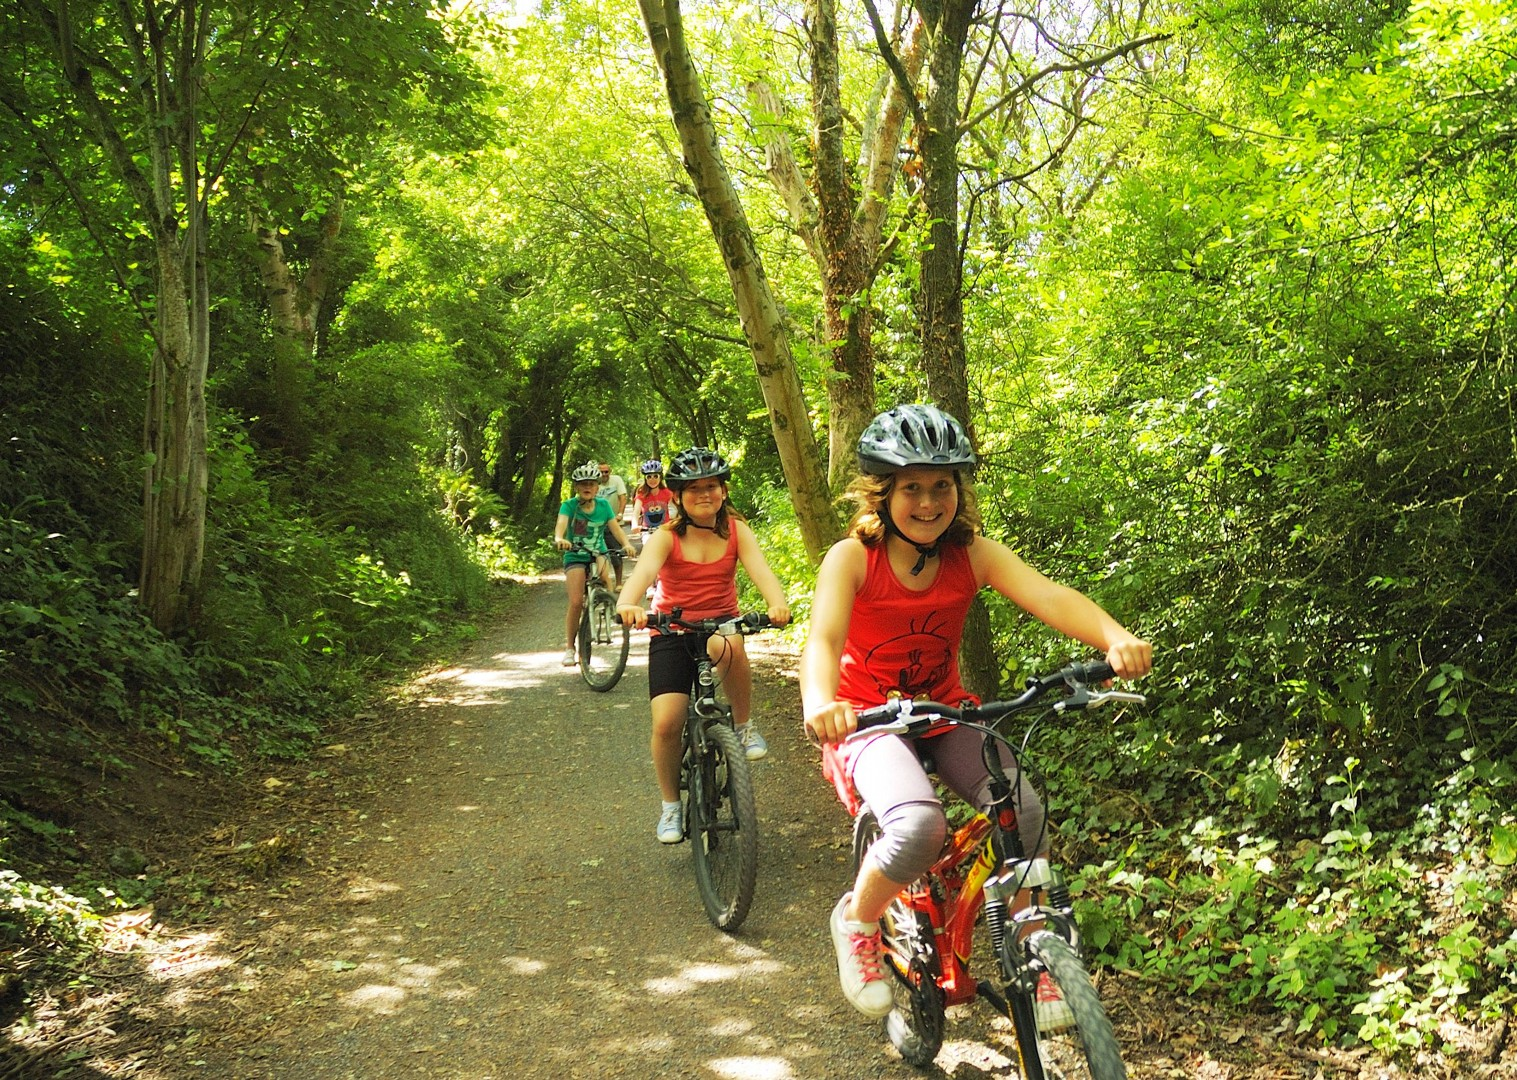 country-cycling-uk-hadrians-explorer.jpg - UK - Highlights of Hadrian's Cycleway - Self-Guided Family Cycling Holiday - Family Cycling